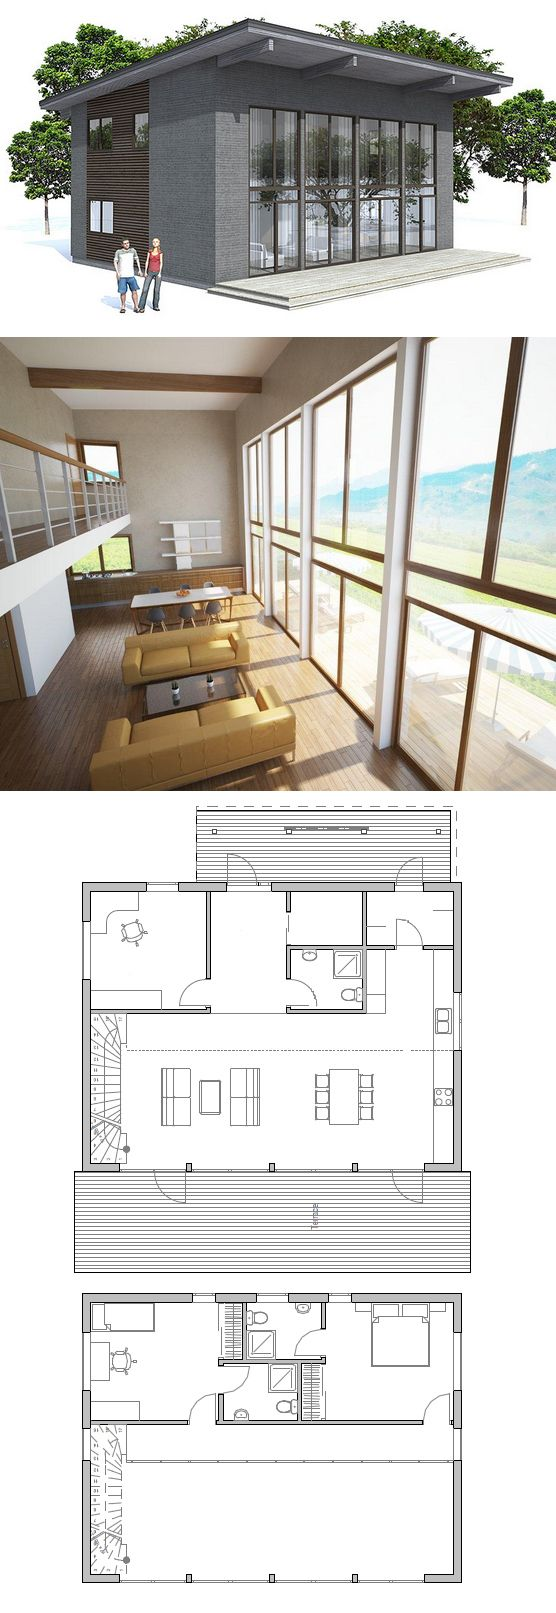 1000+ images about Slope roof modern on Pinterest - ^